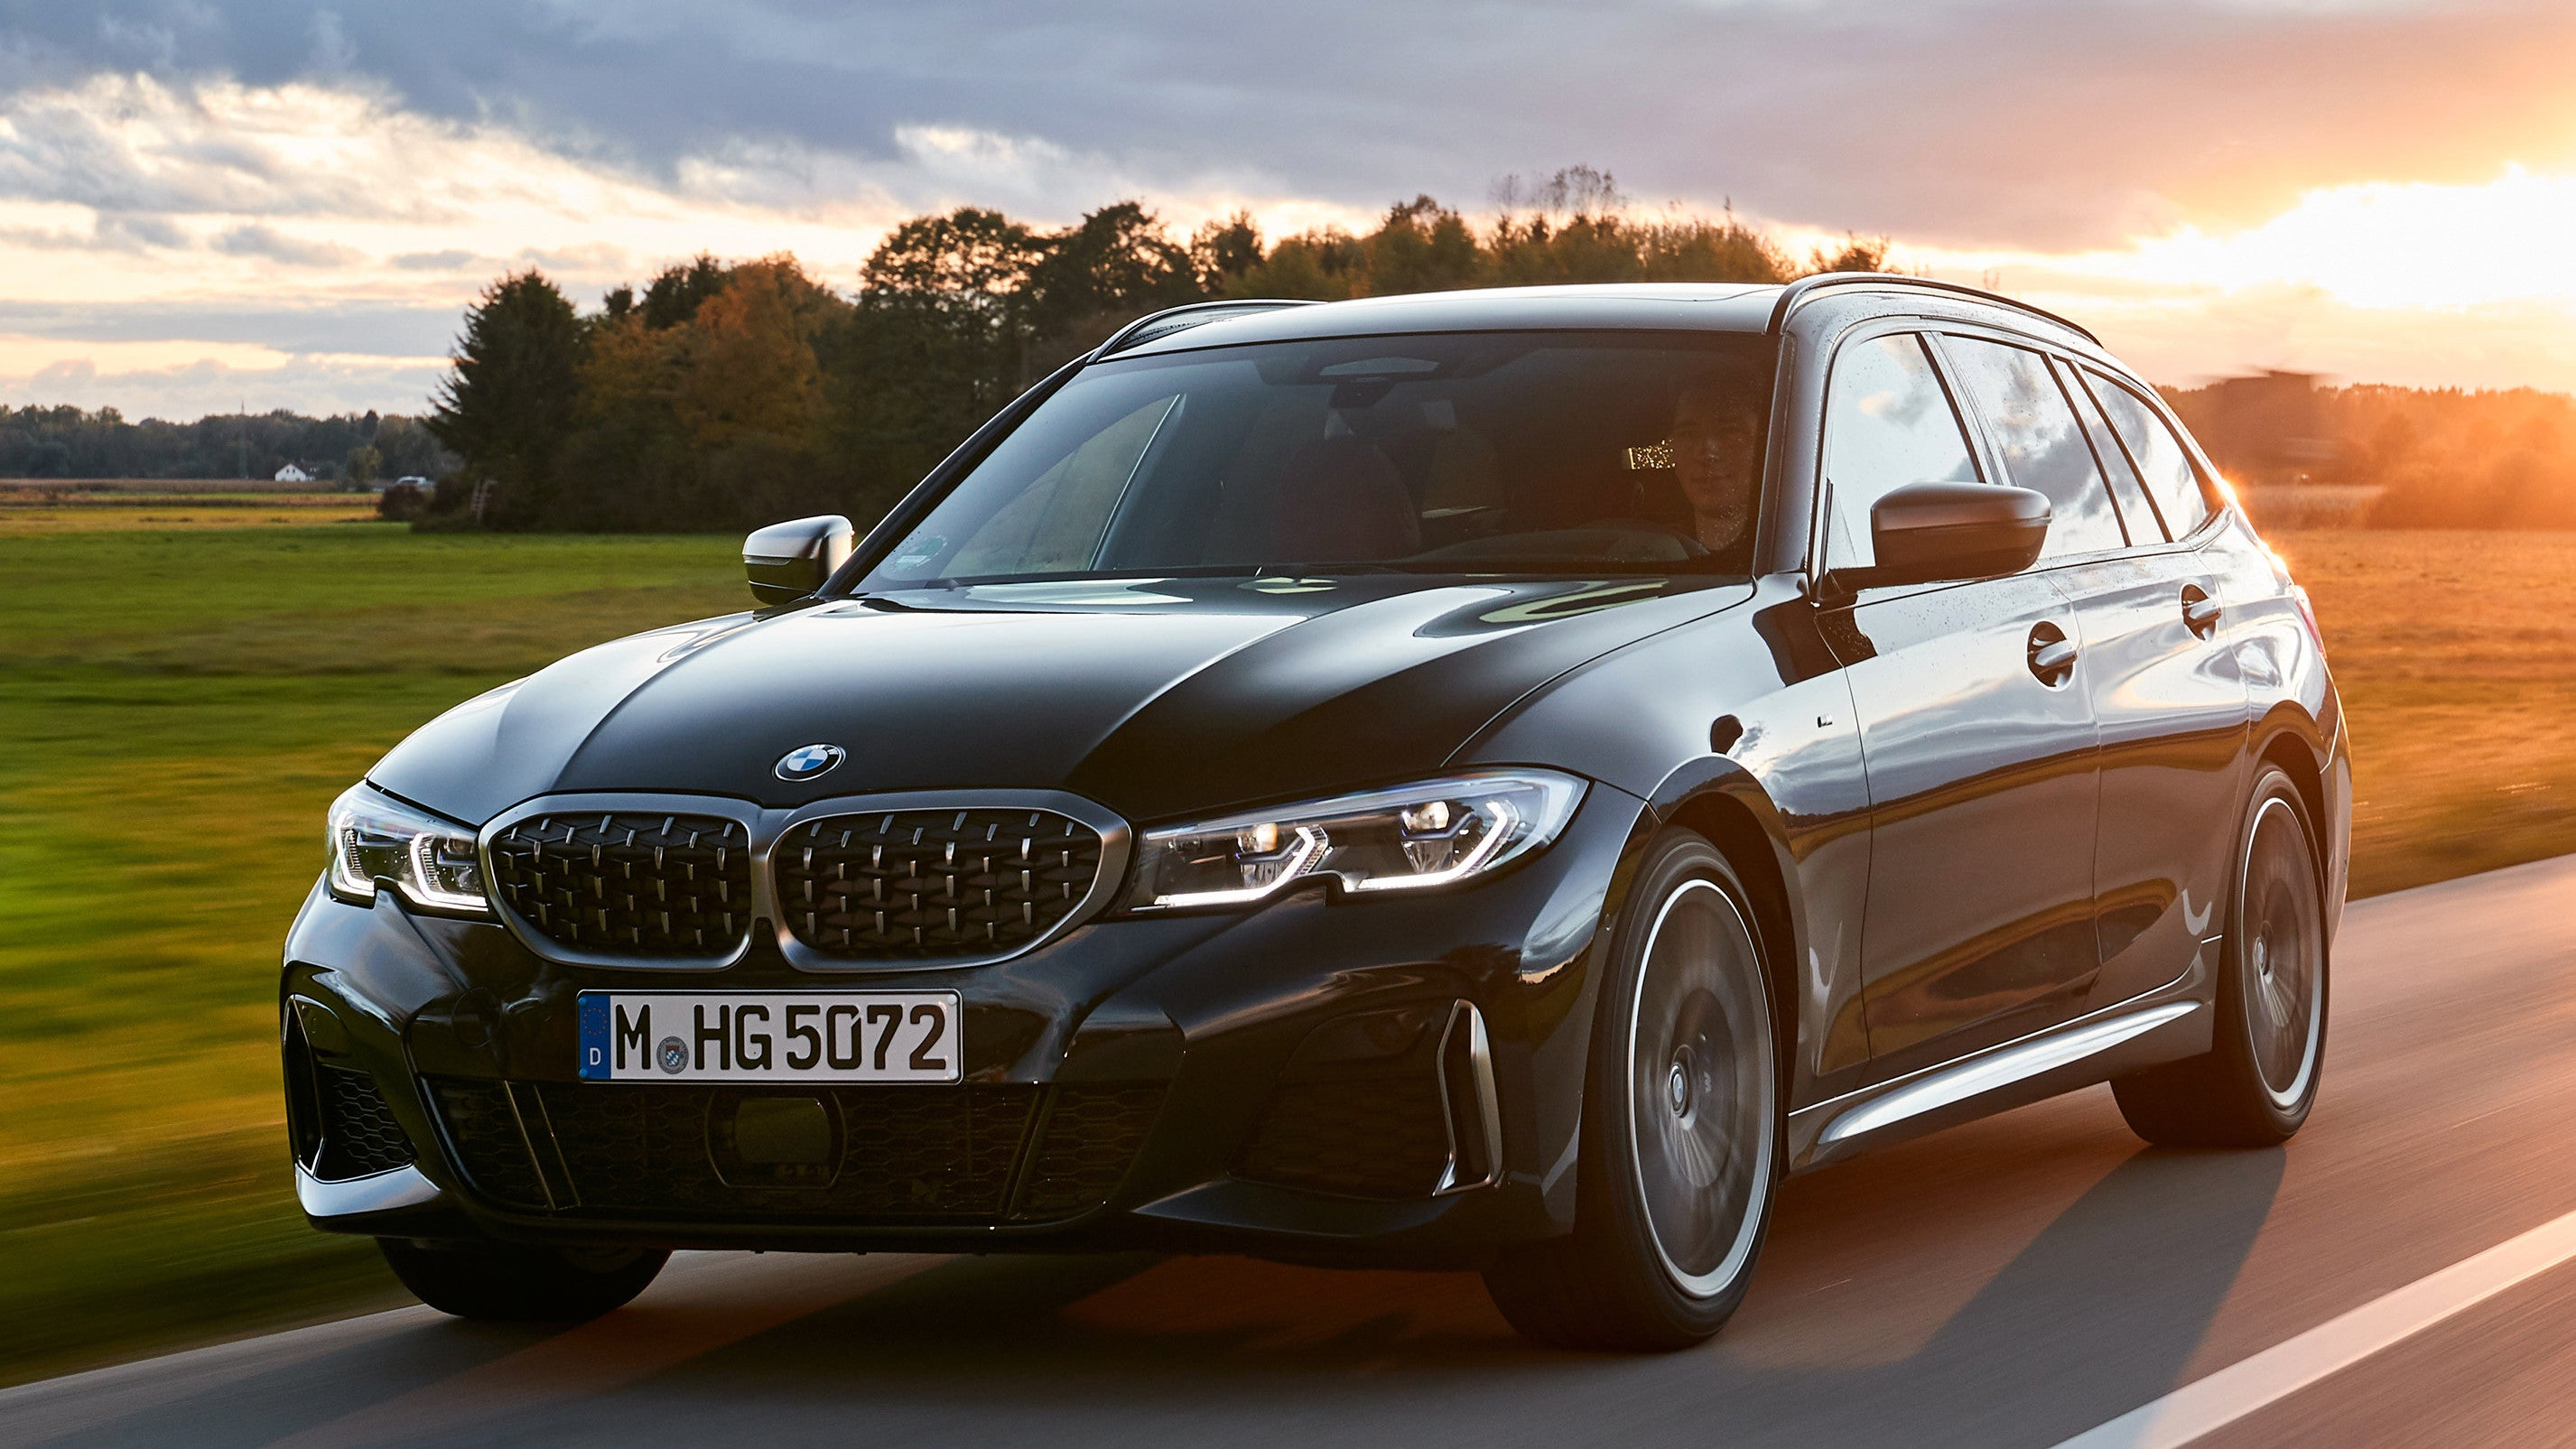 BMW Says It Will Make Gas Engines For At Least 30 More Years